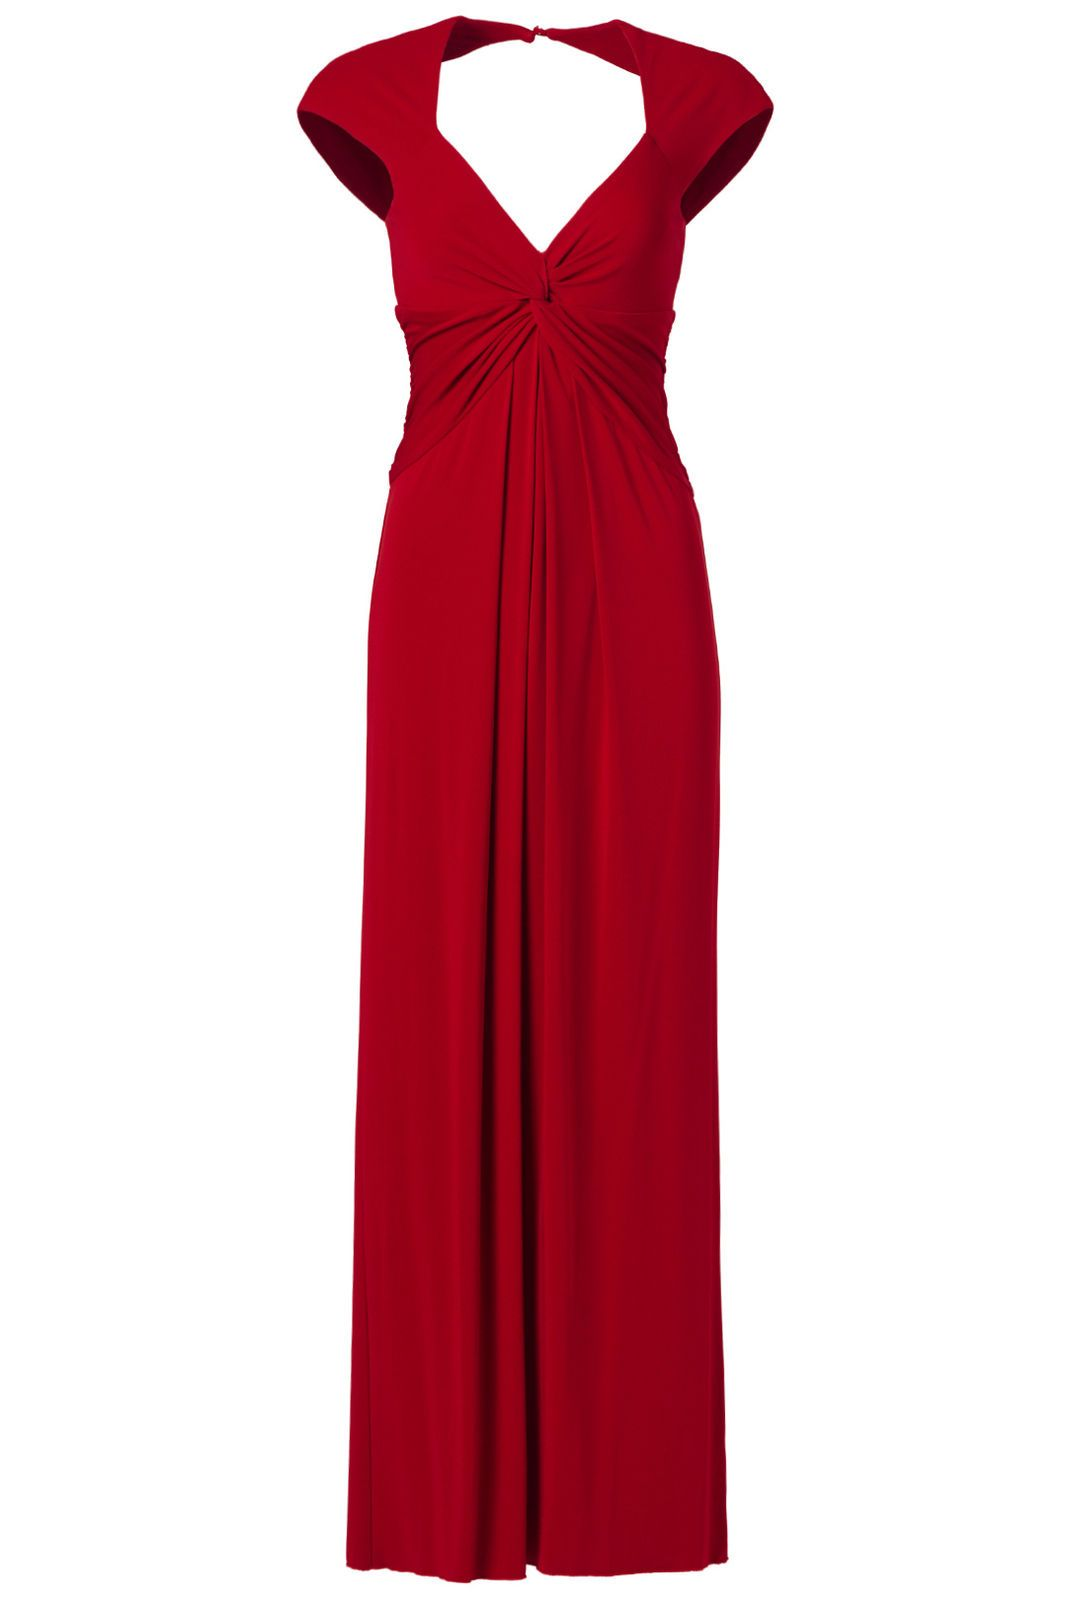 Cool Awesome Nicole Miller Red Women\'s Size 12 Gather V-Neck Cutout ...